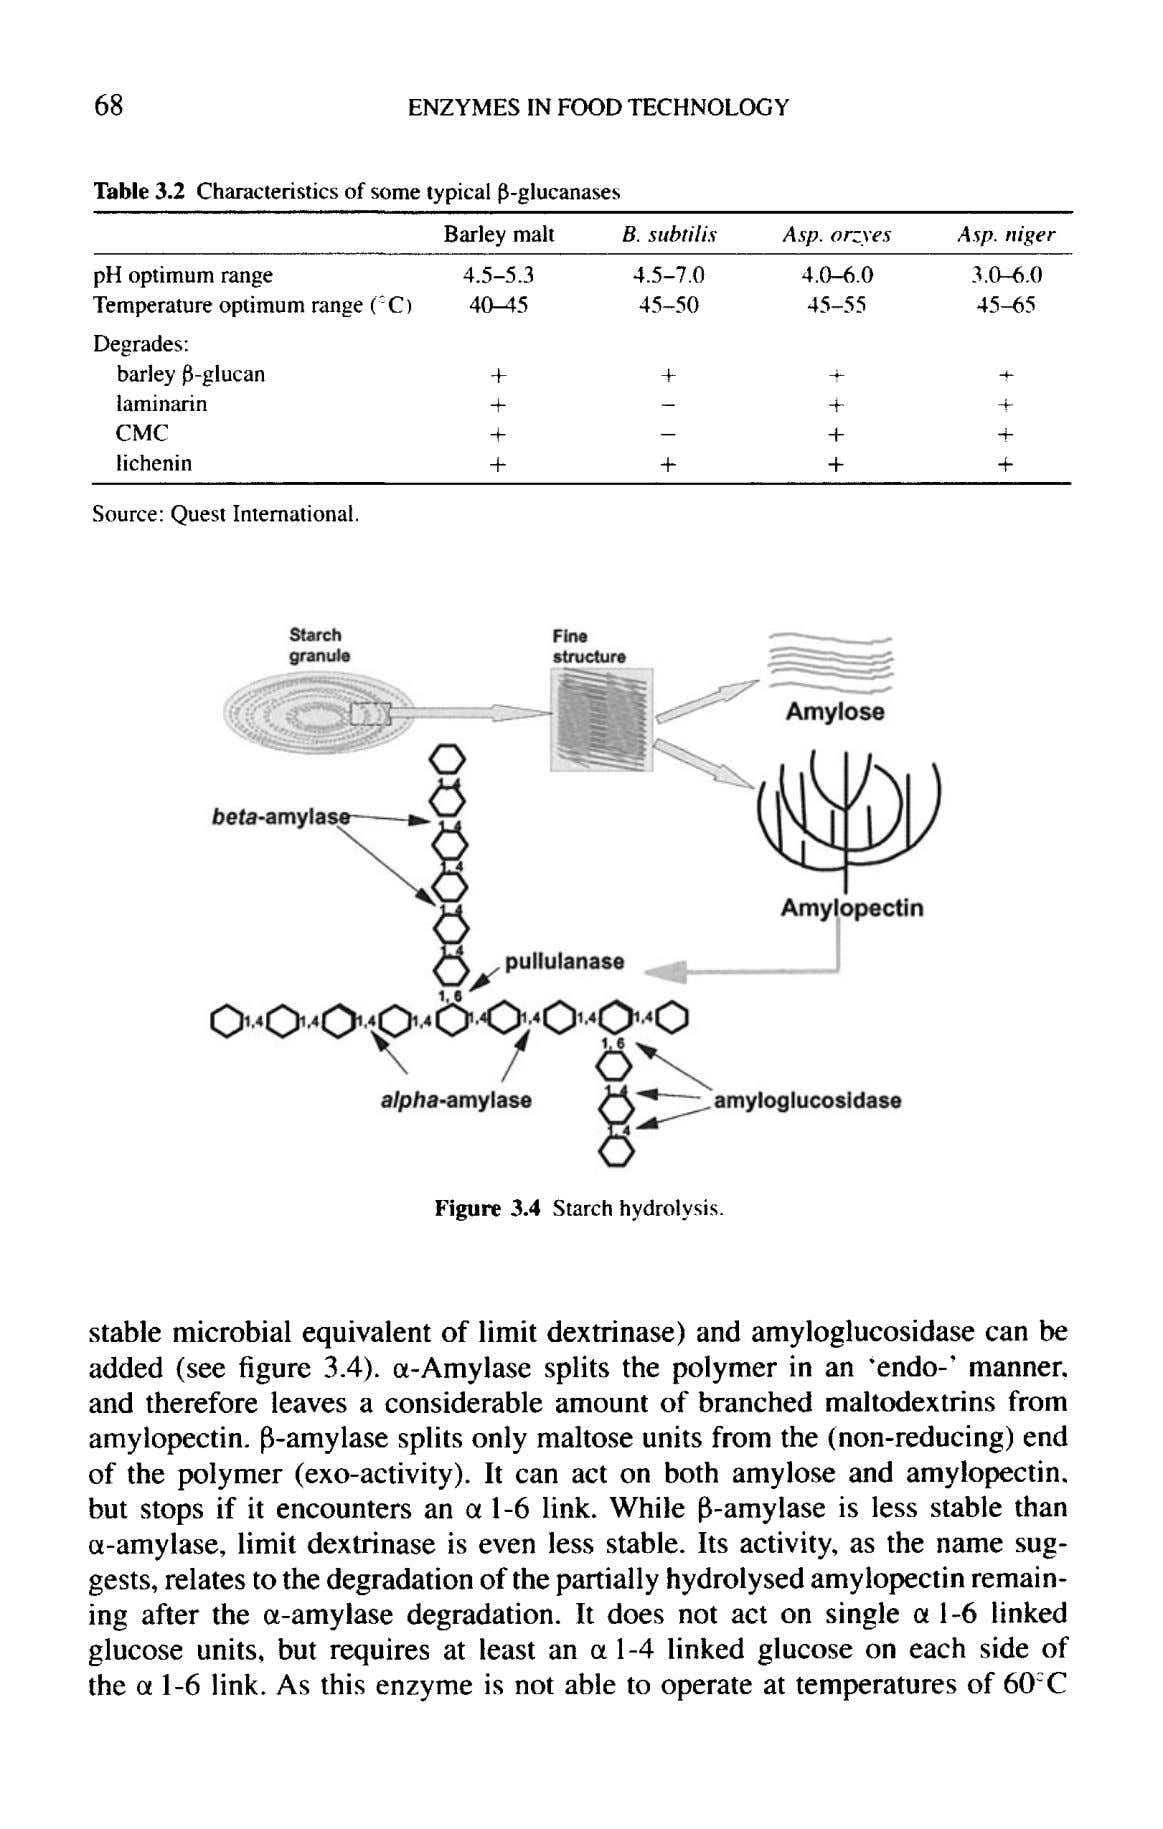 68 ENZYMES IN FOOD TECHNOLOGY Table 3.2 Characteristics of some typical fi-glucanases Barley malt B.